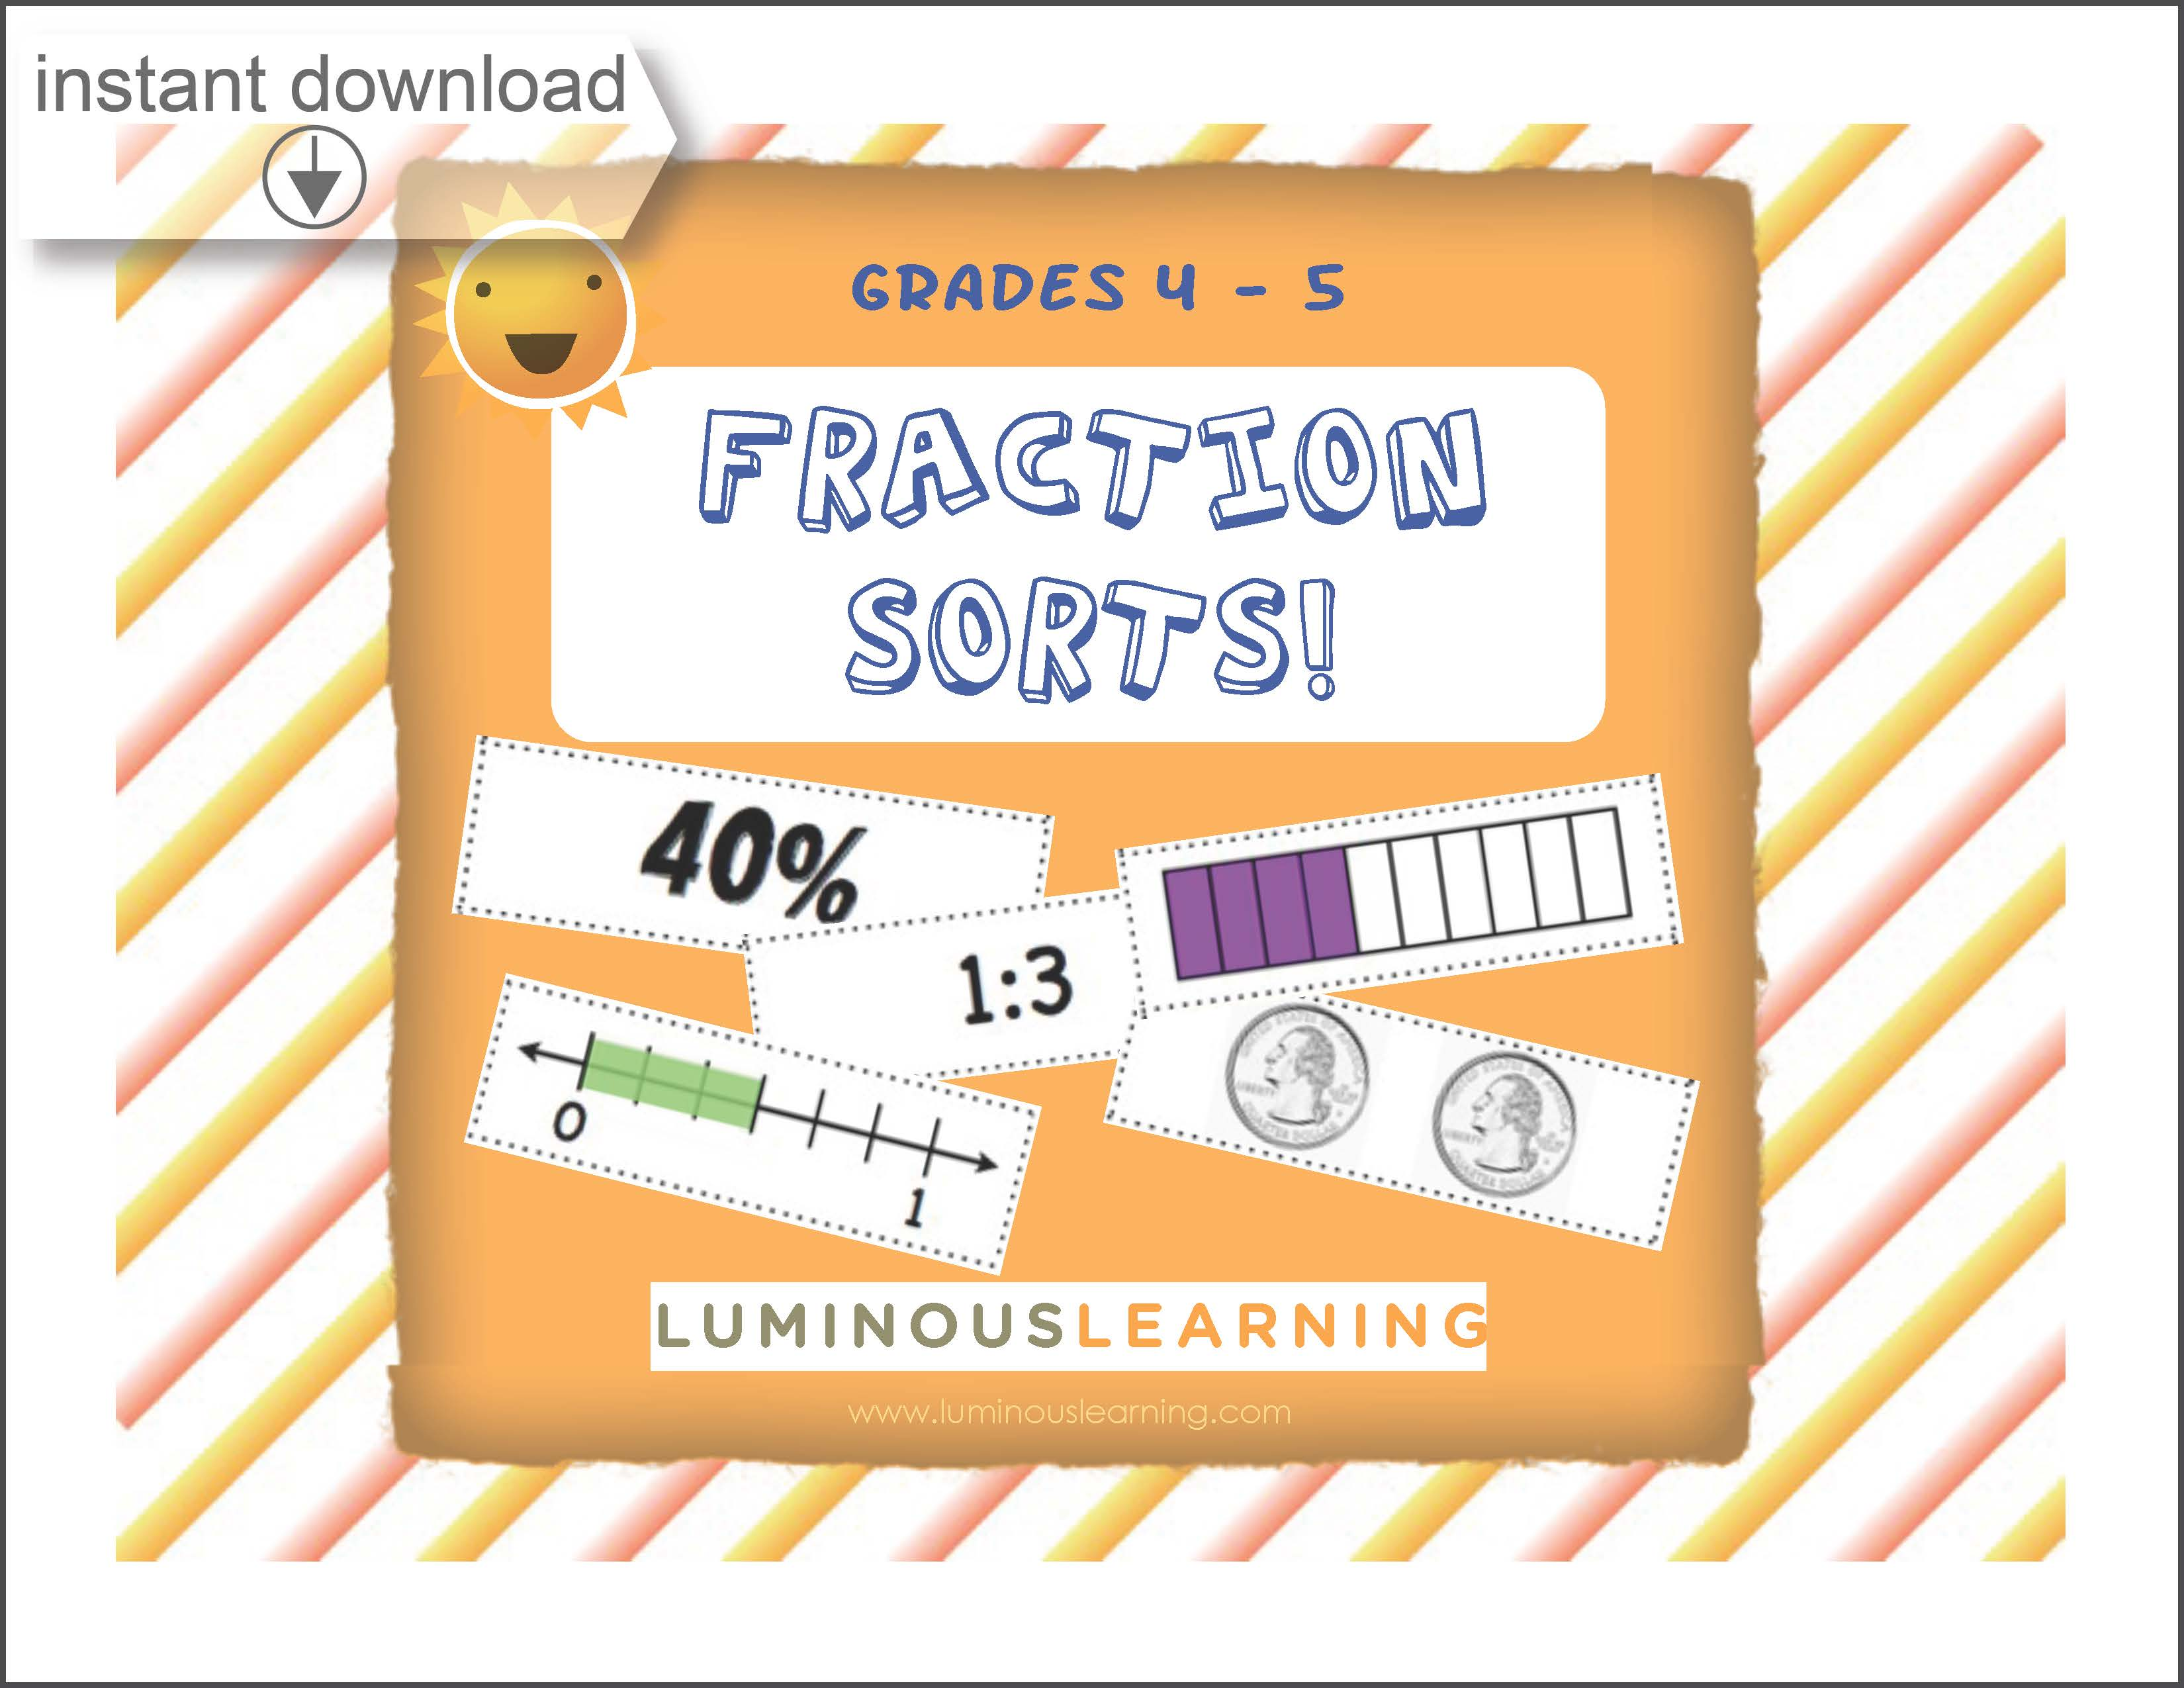 Grades 4 - 5 Decimal, Fraction, and Percent Sorting: Printable Activit   Luminous Learning